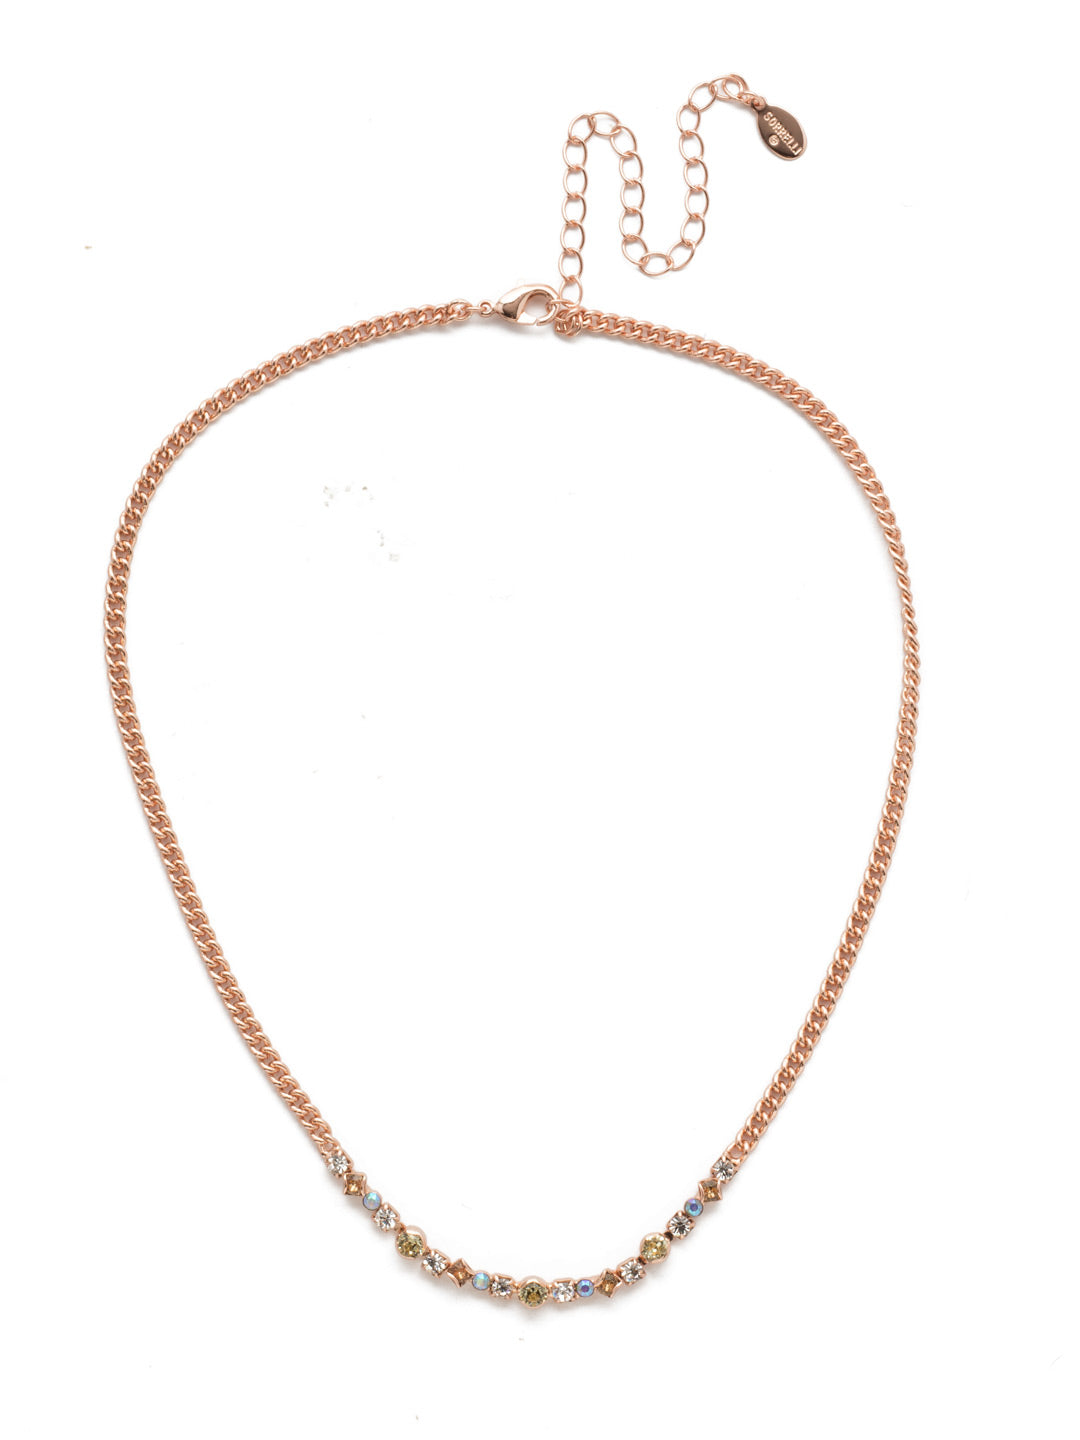 Charolette Tennis Necklace - NEN21RGROG